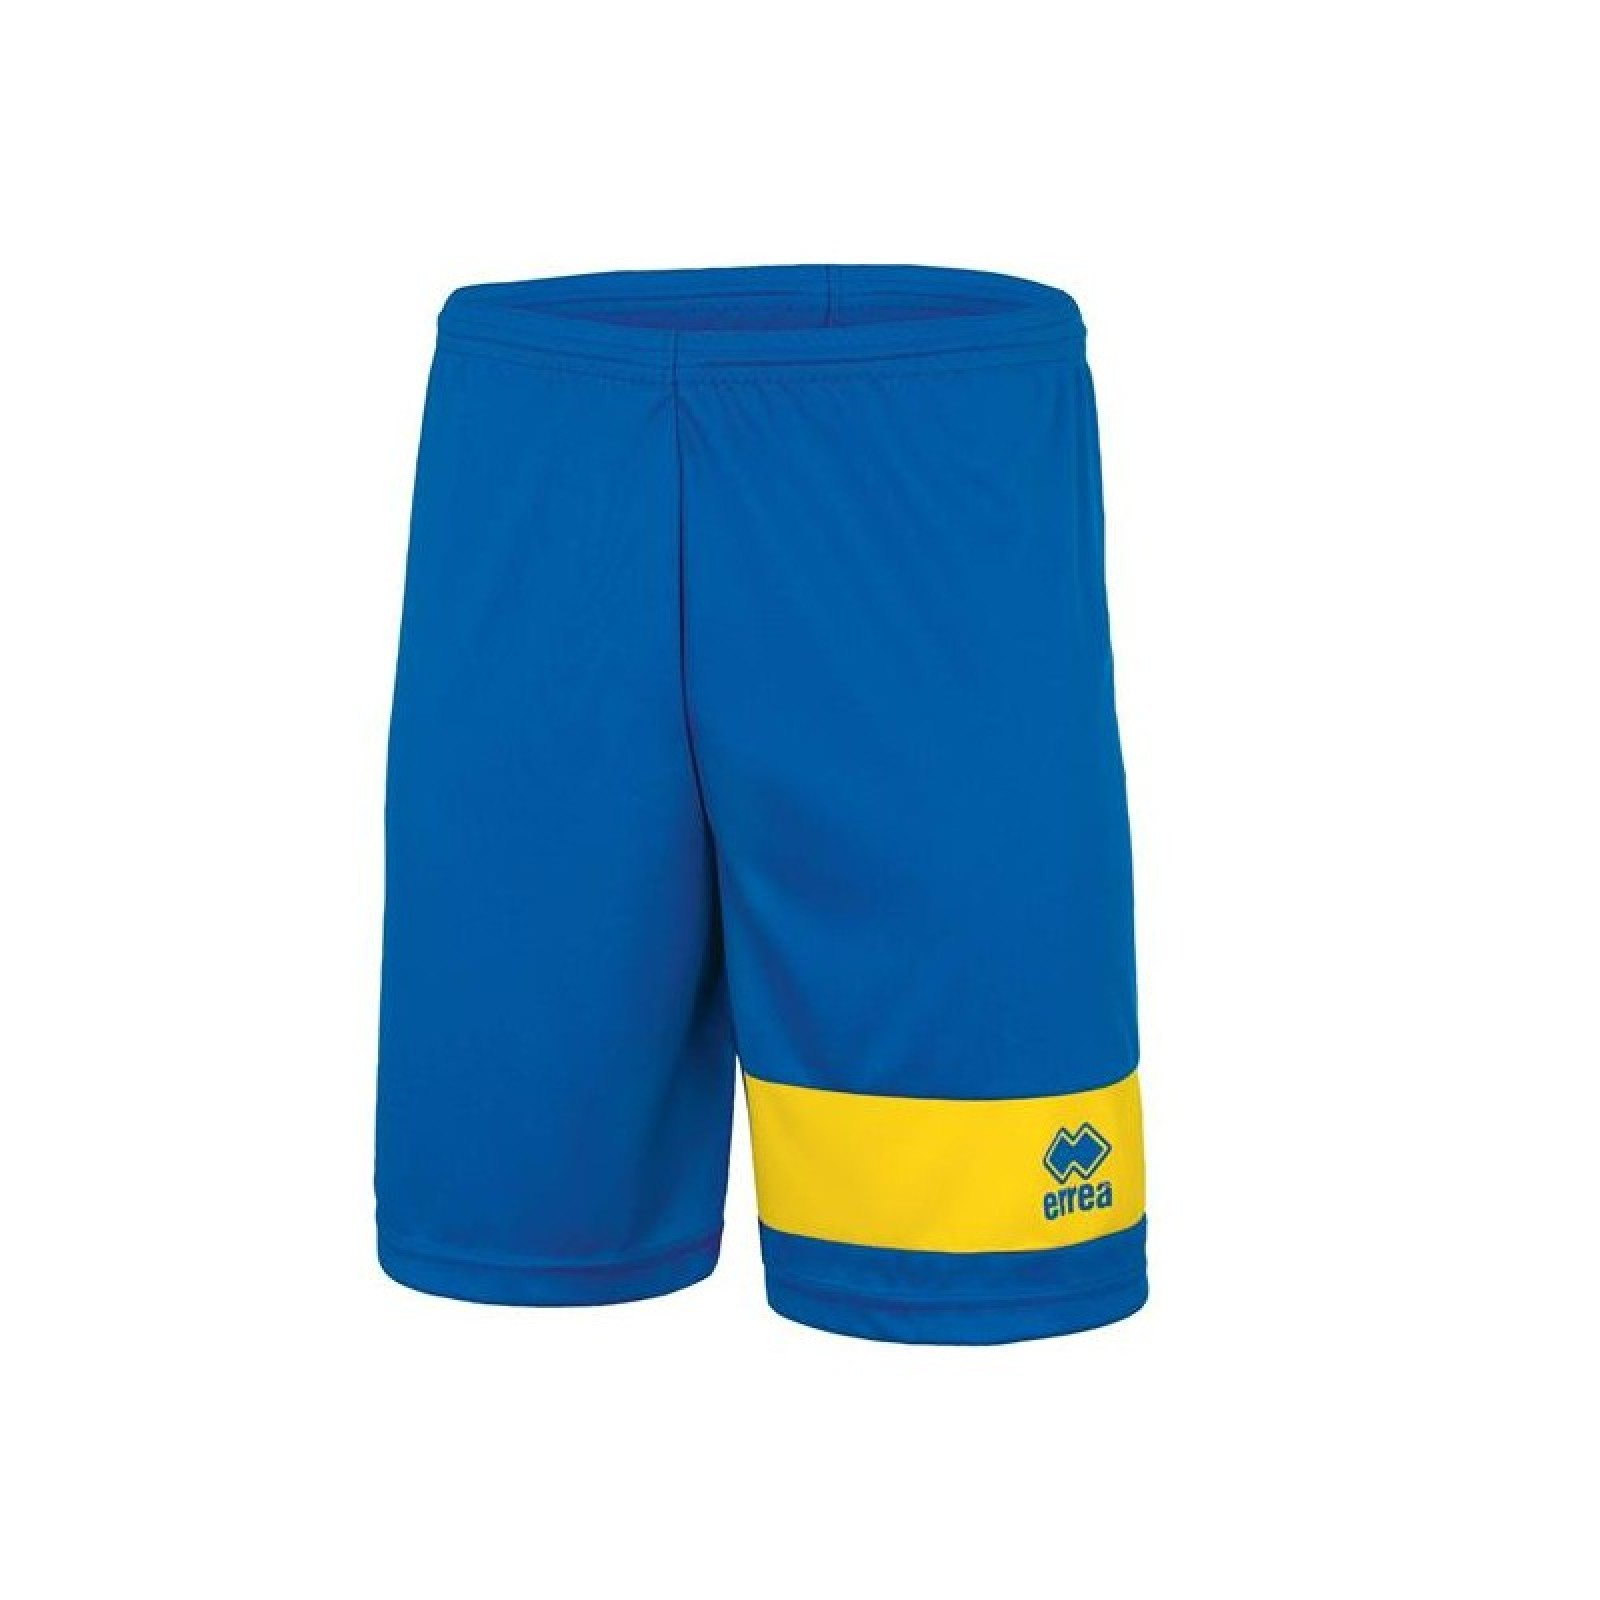 ERREA MARCUS SHORTS BLUE//RED SIZE XXS TO XS BNWT RRP £9.00